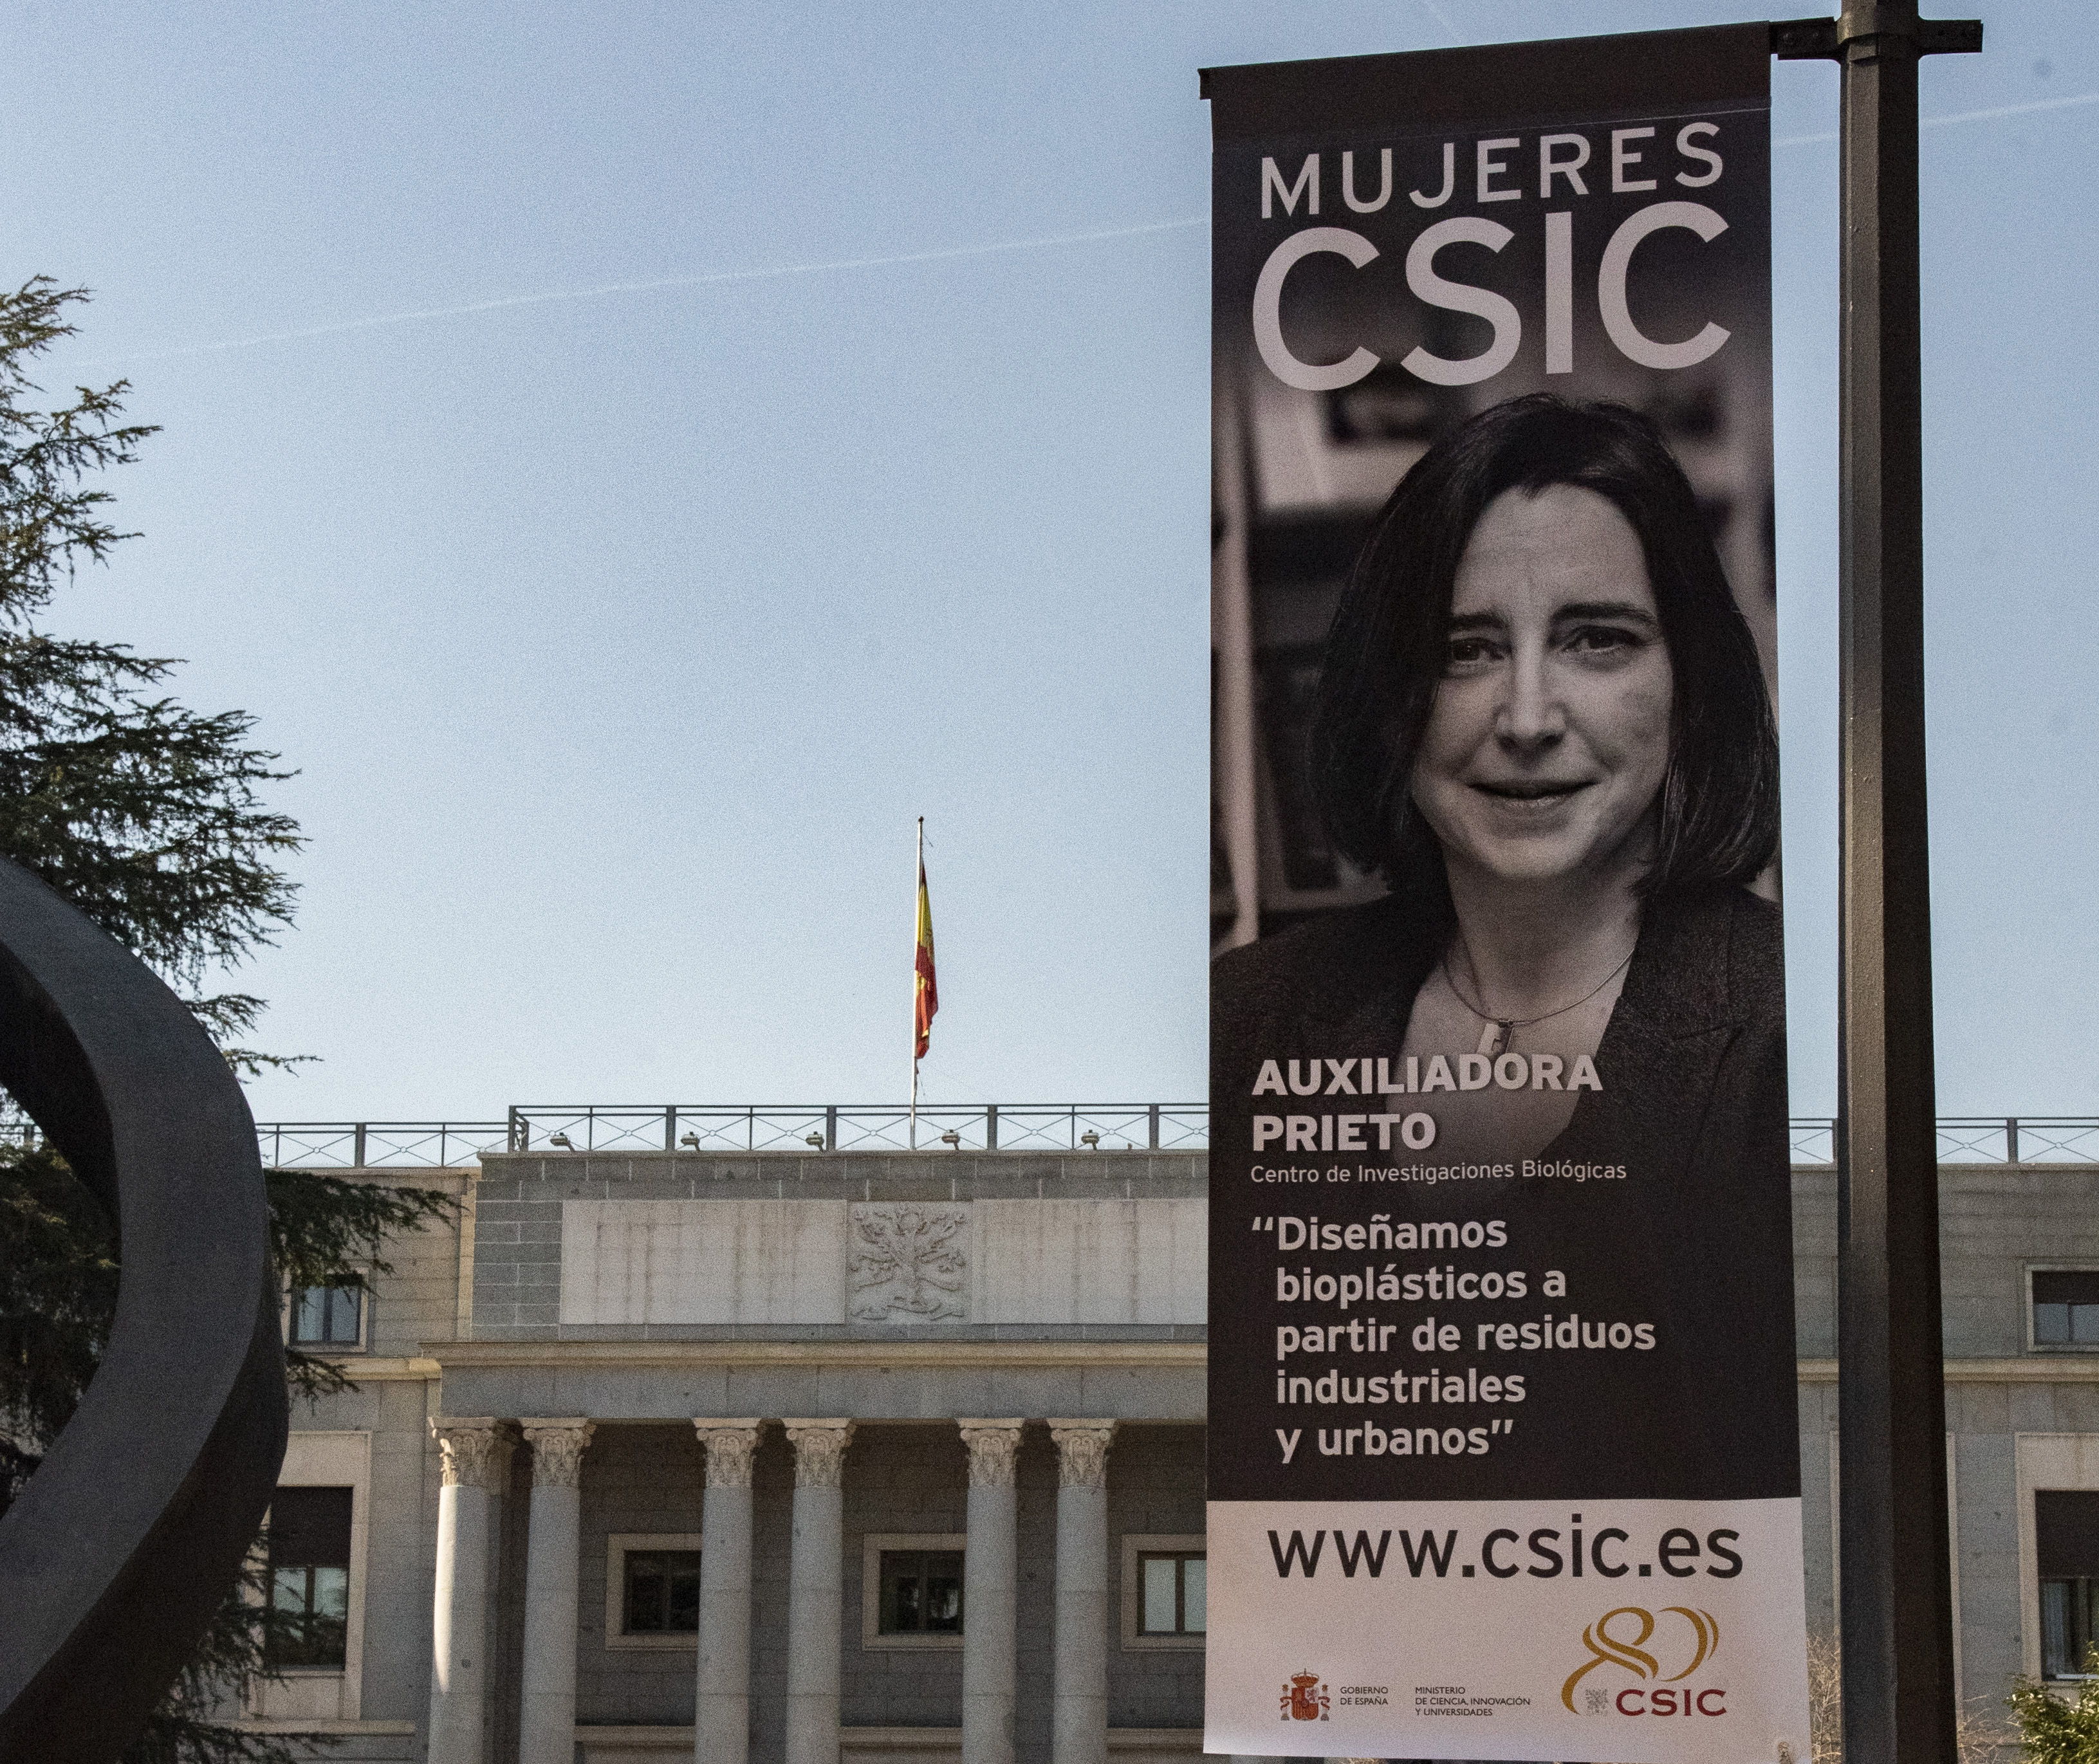 Dr  Auxiliadora Prieto, one of the female faces of CSIC in